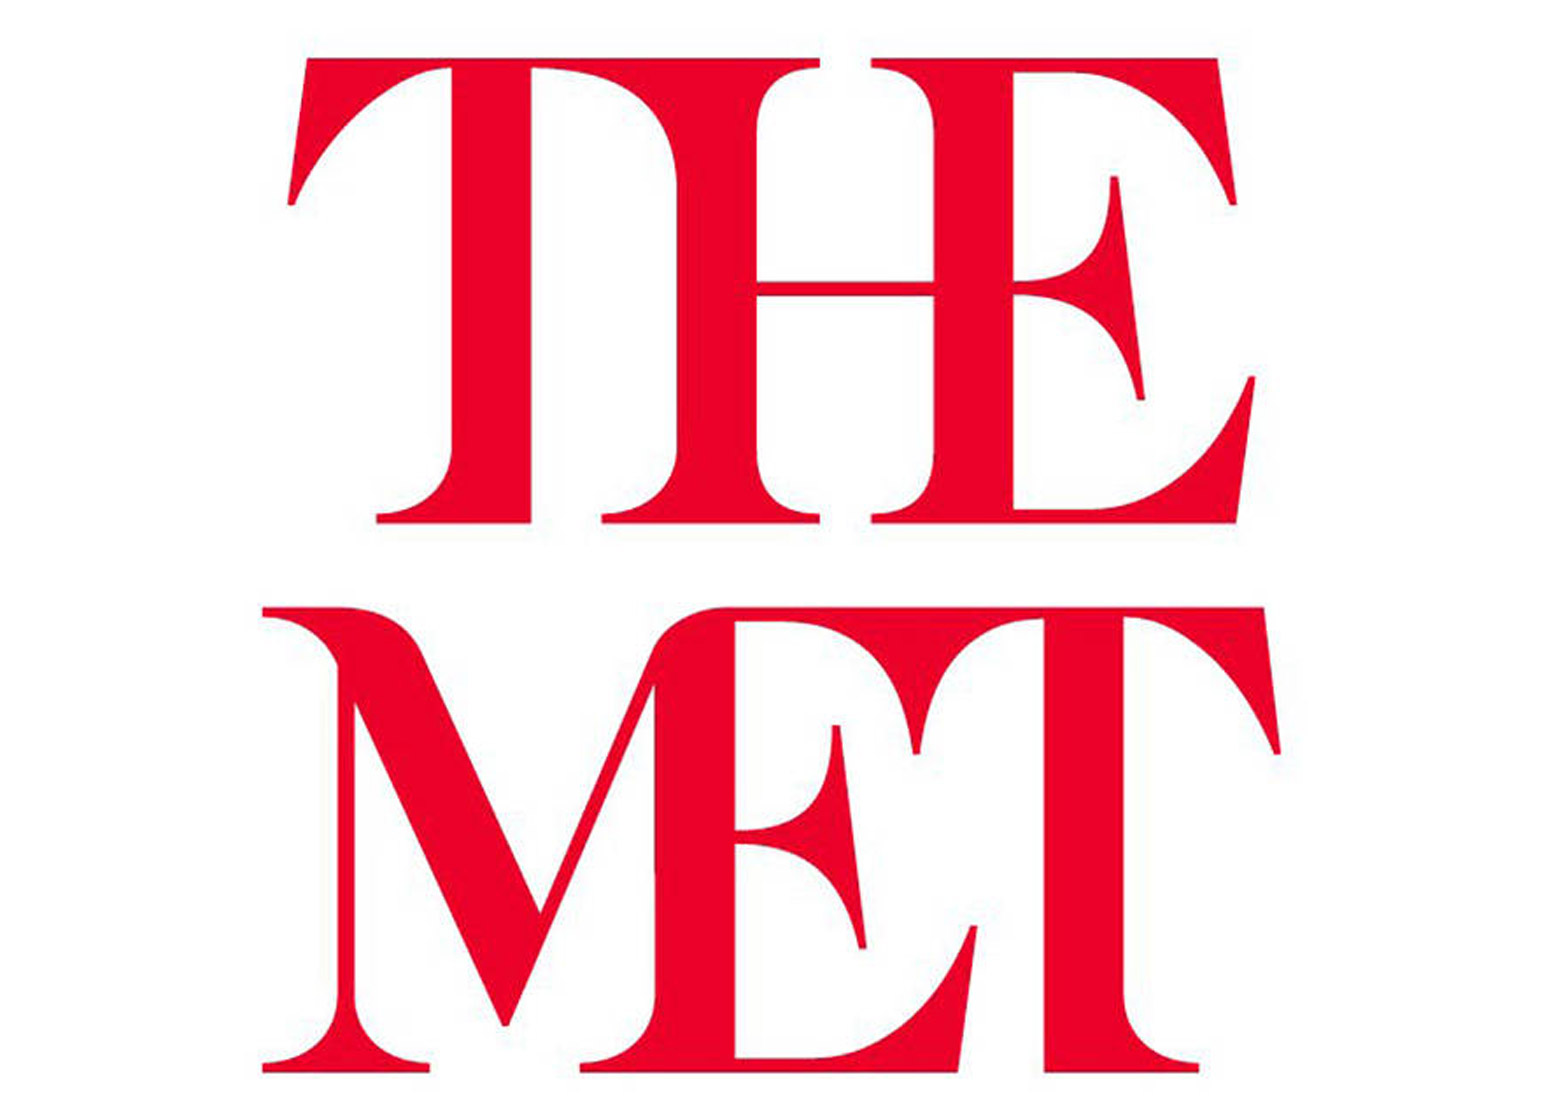 Logo for the Metropolitan Museum of Art